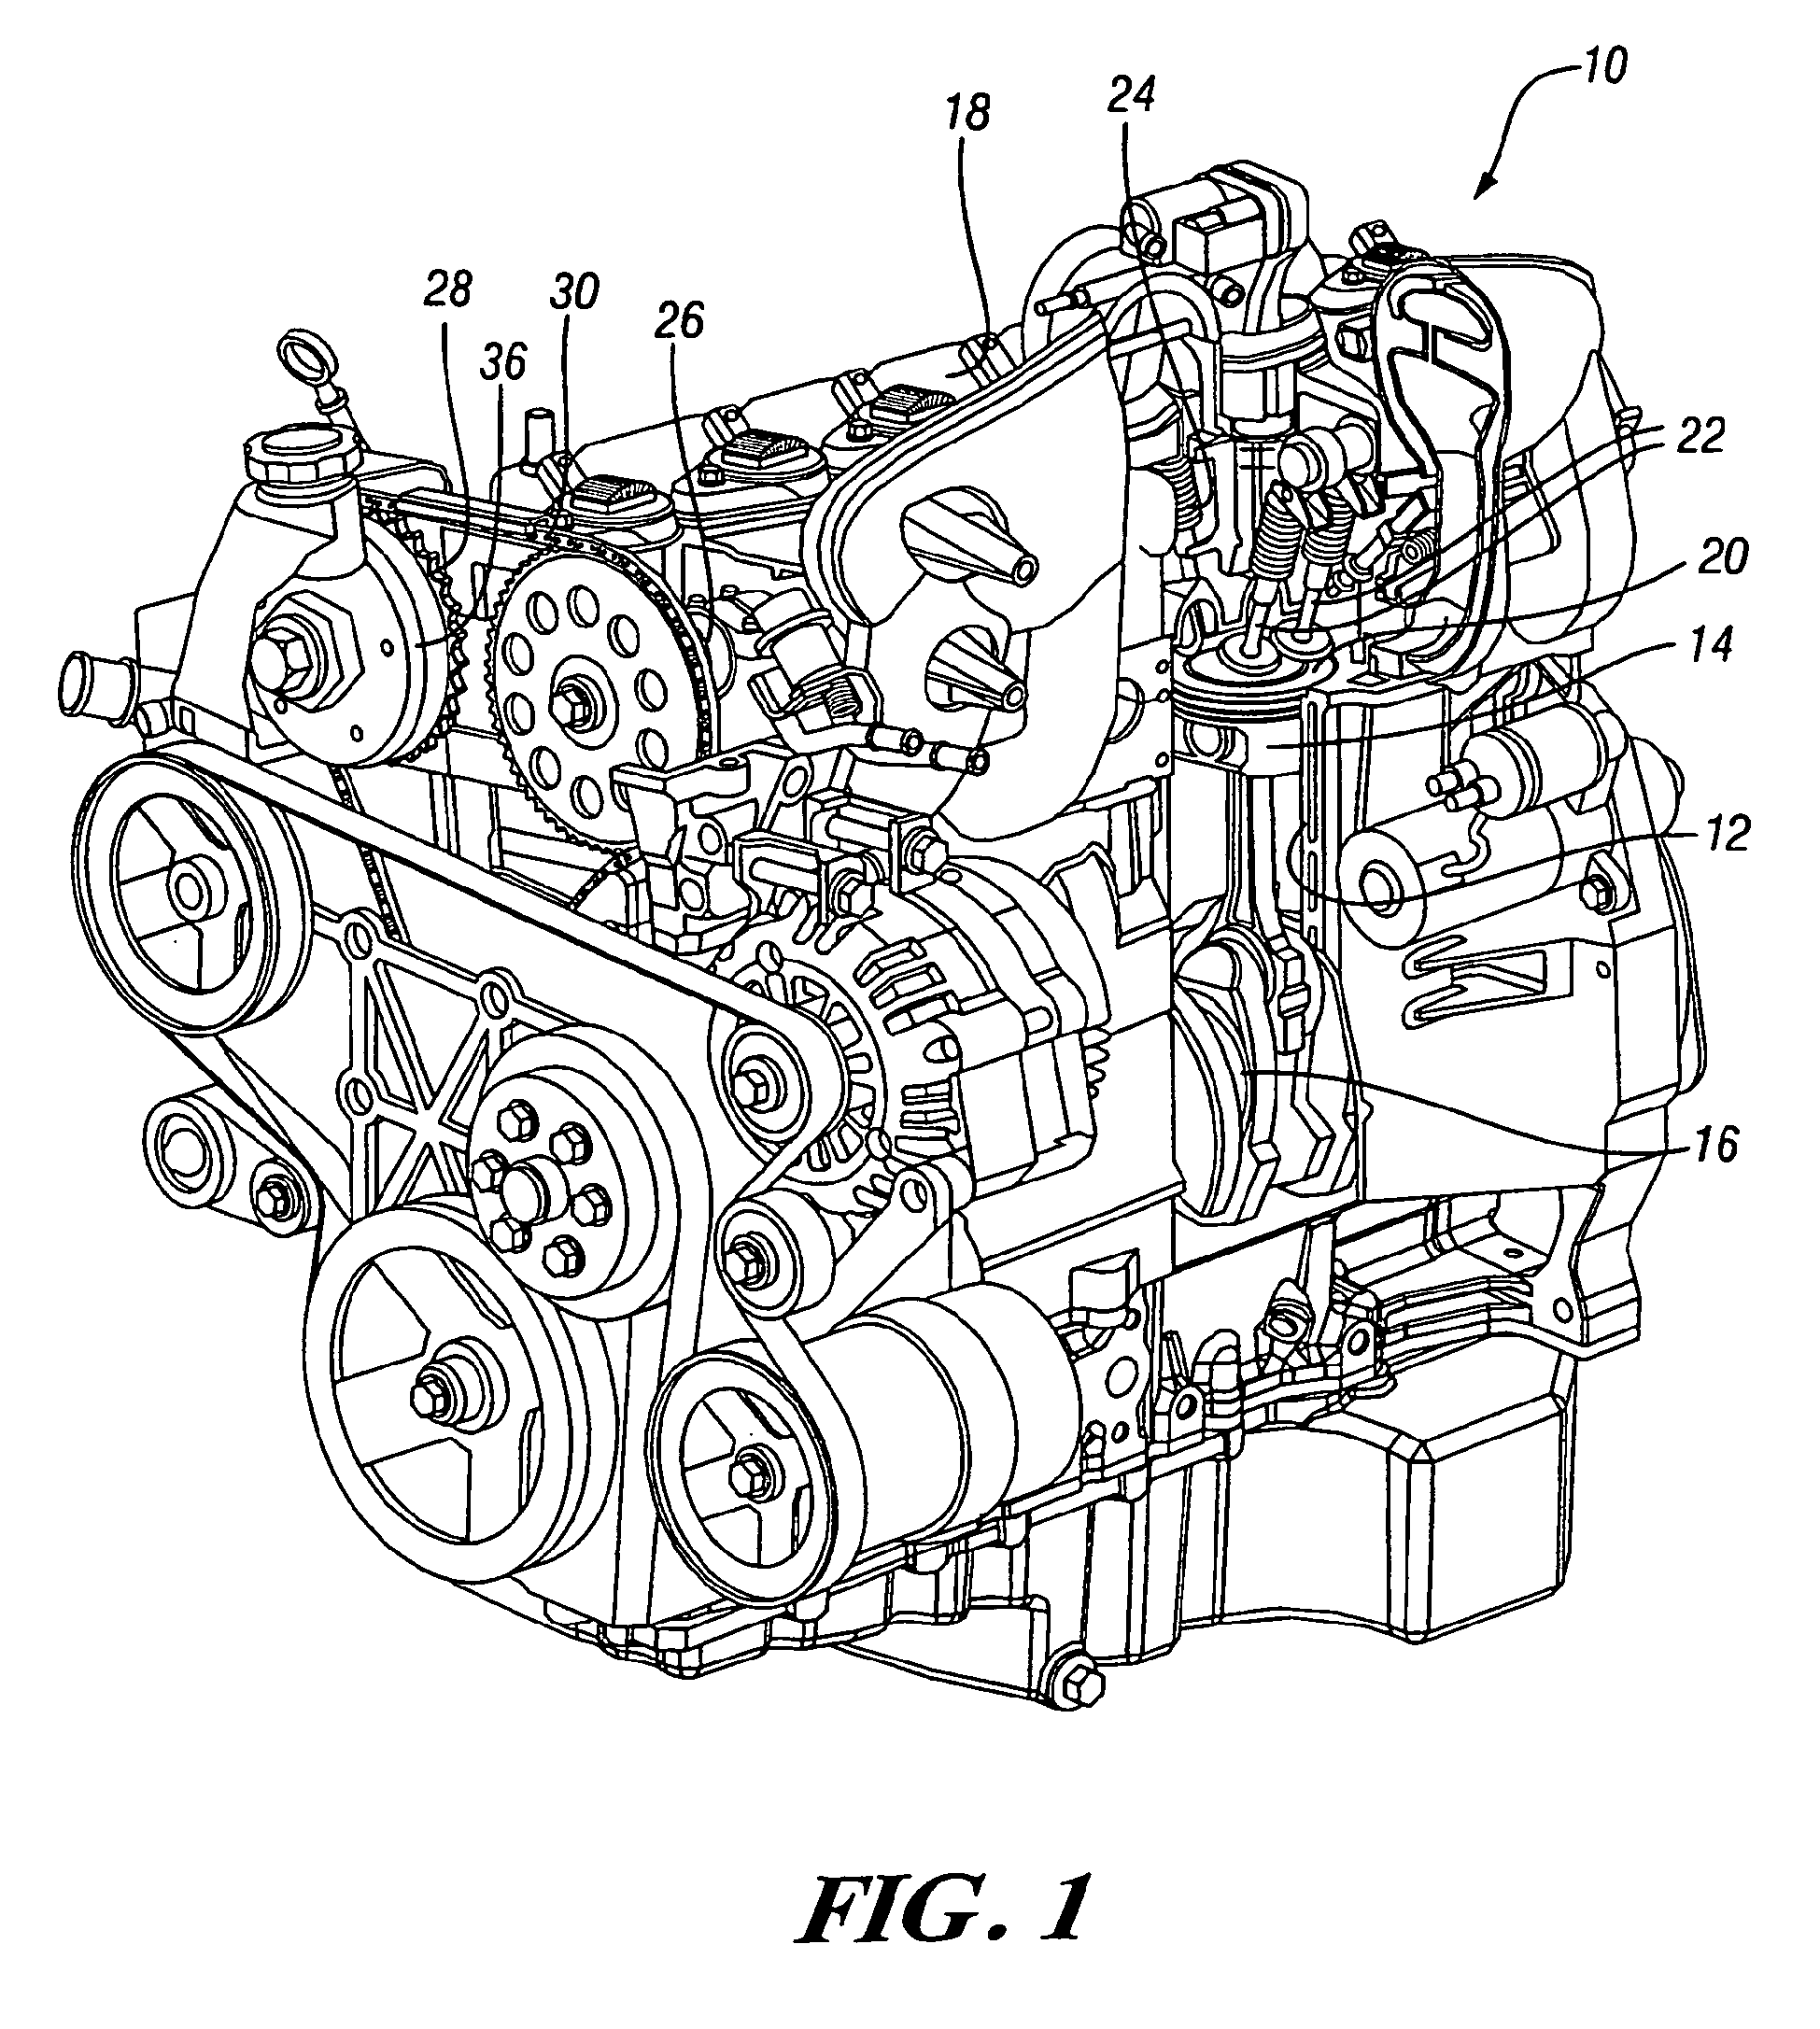 patent ep1541814b1 - diesel engine with cam phasers for in-cylinder temperature control